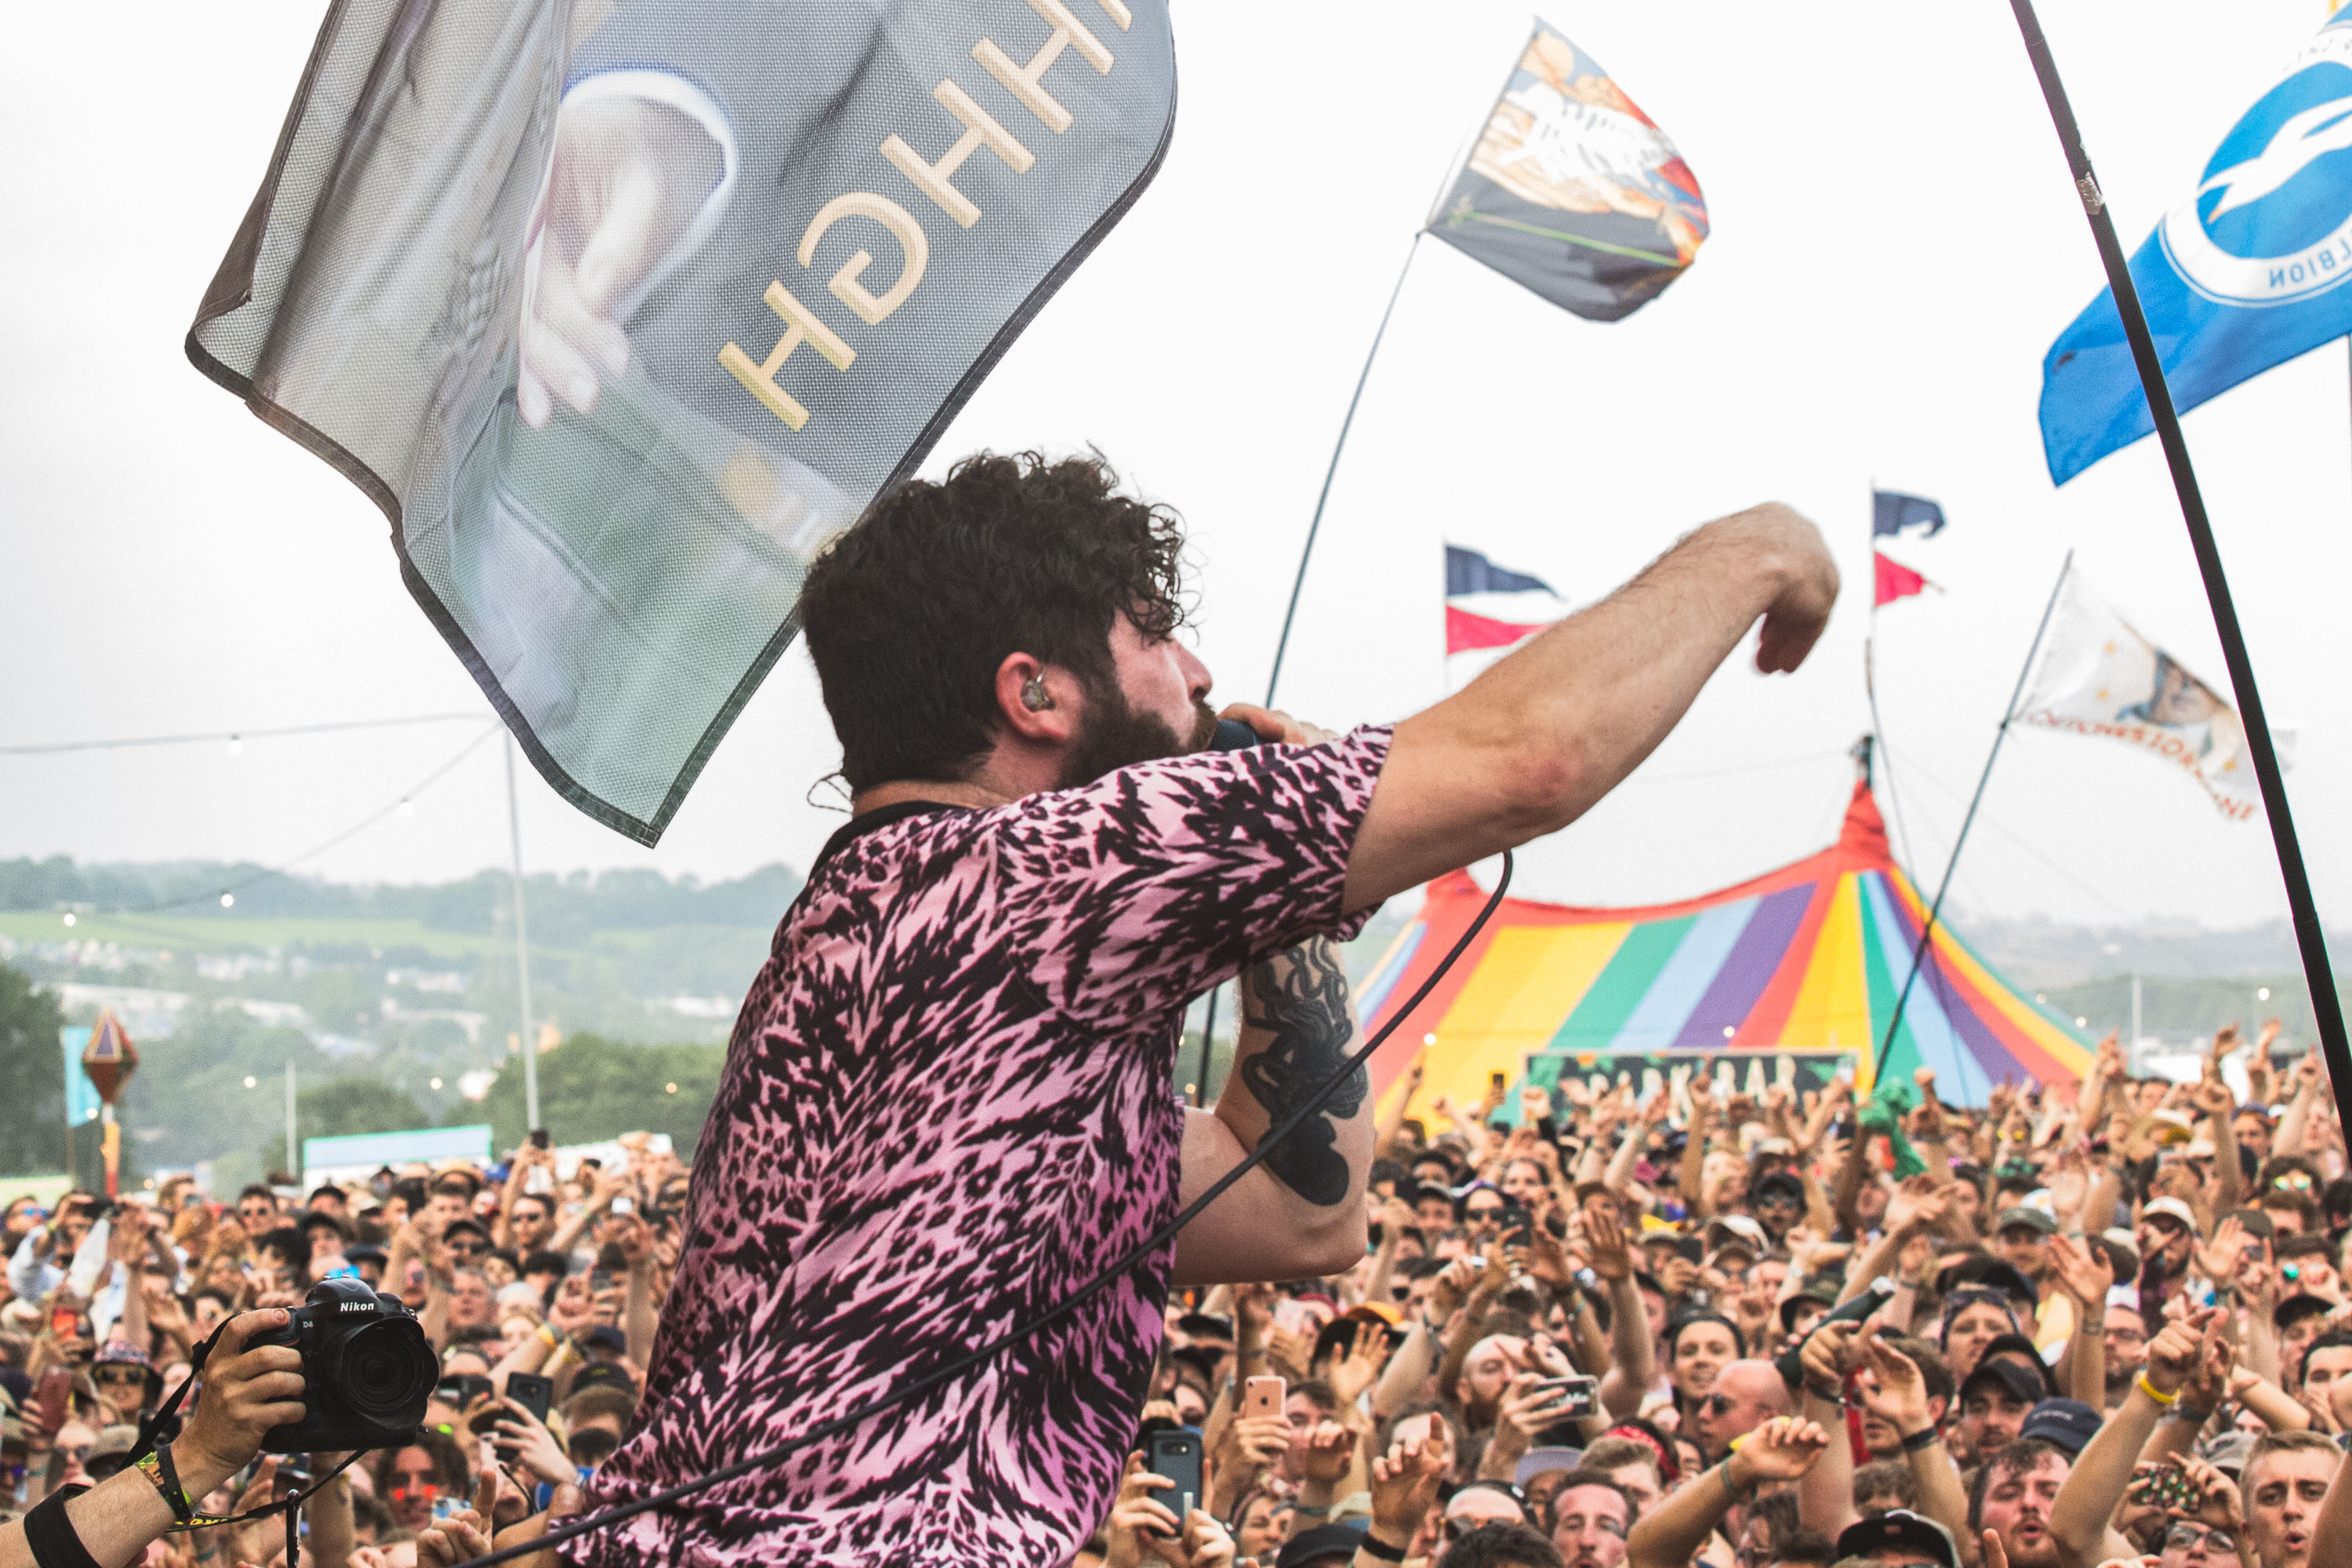 Foals stake a claim as future headliners at heaving surprise Glastonbury set